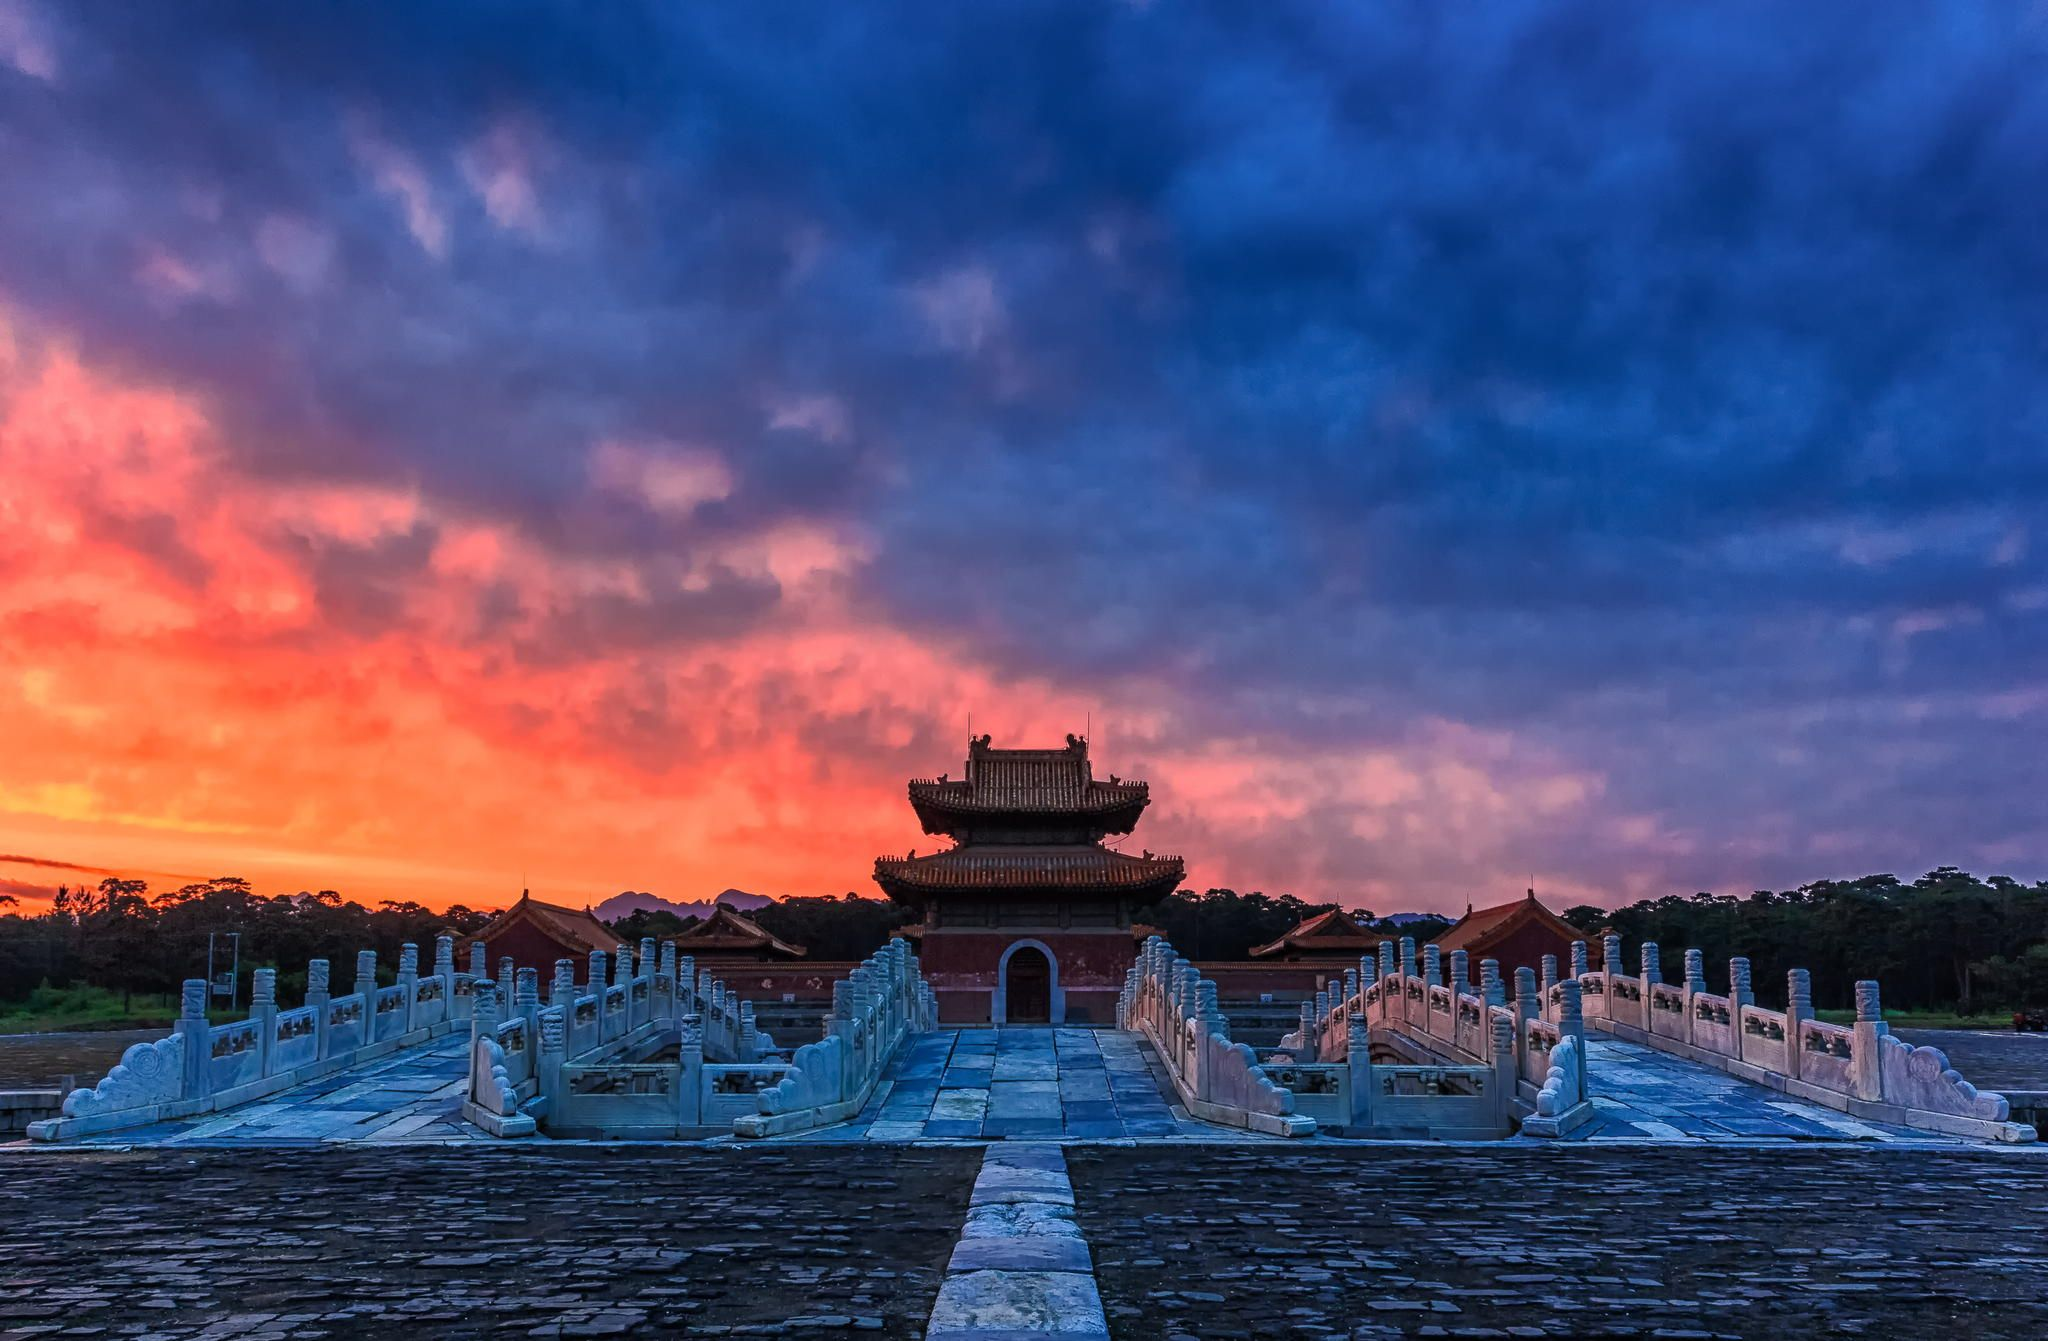 Eastern Qing Tombs by qiao liang on 500px